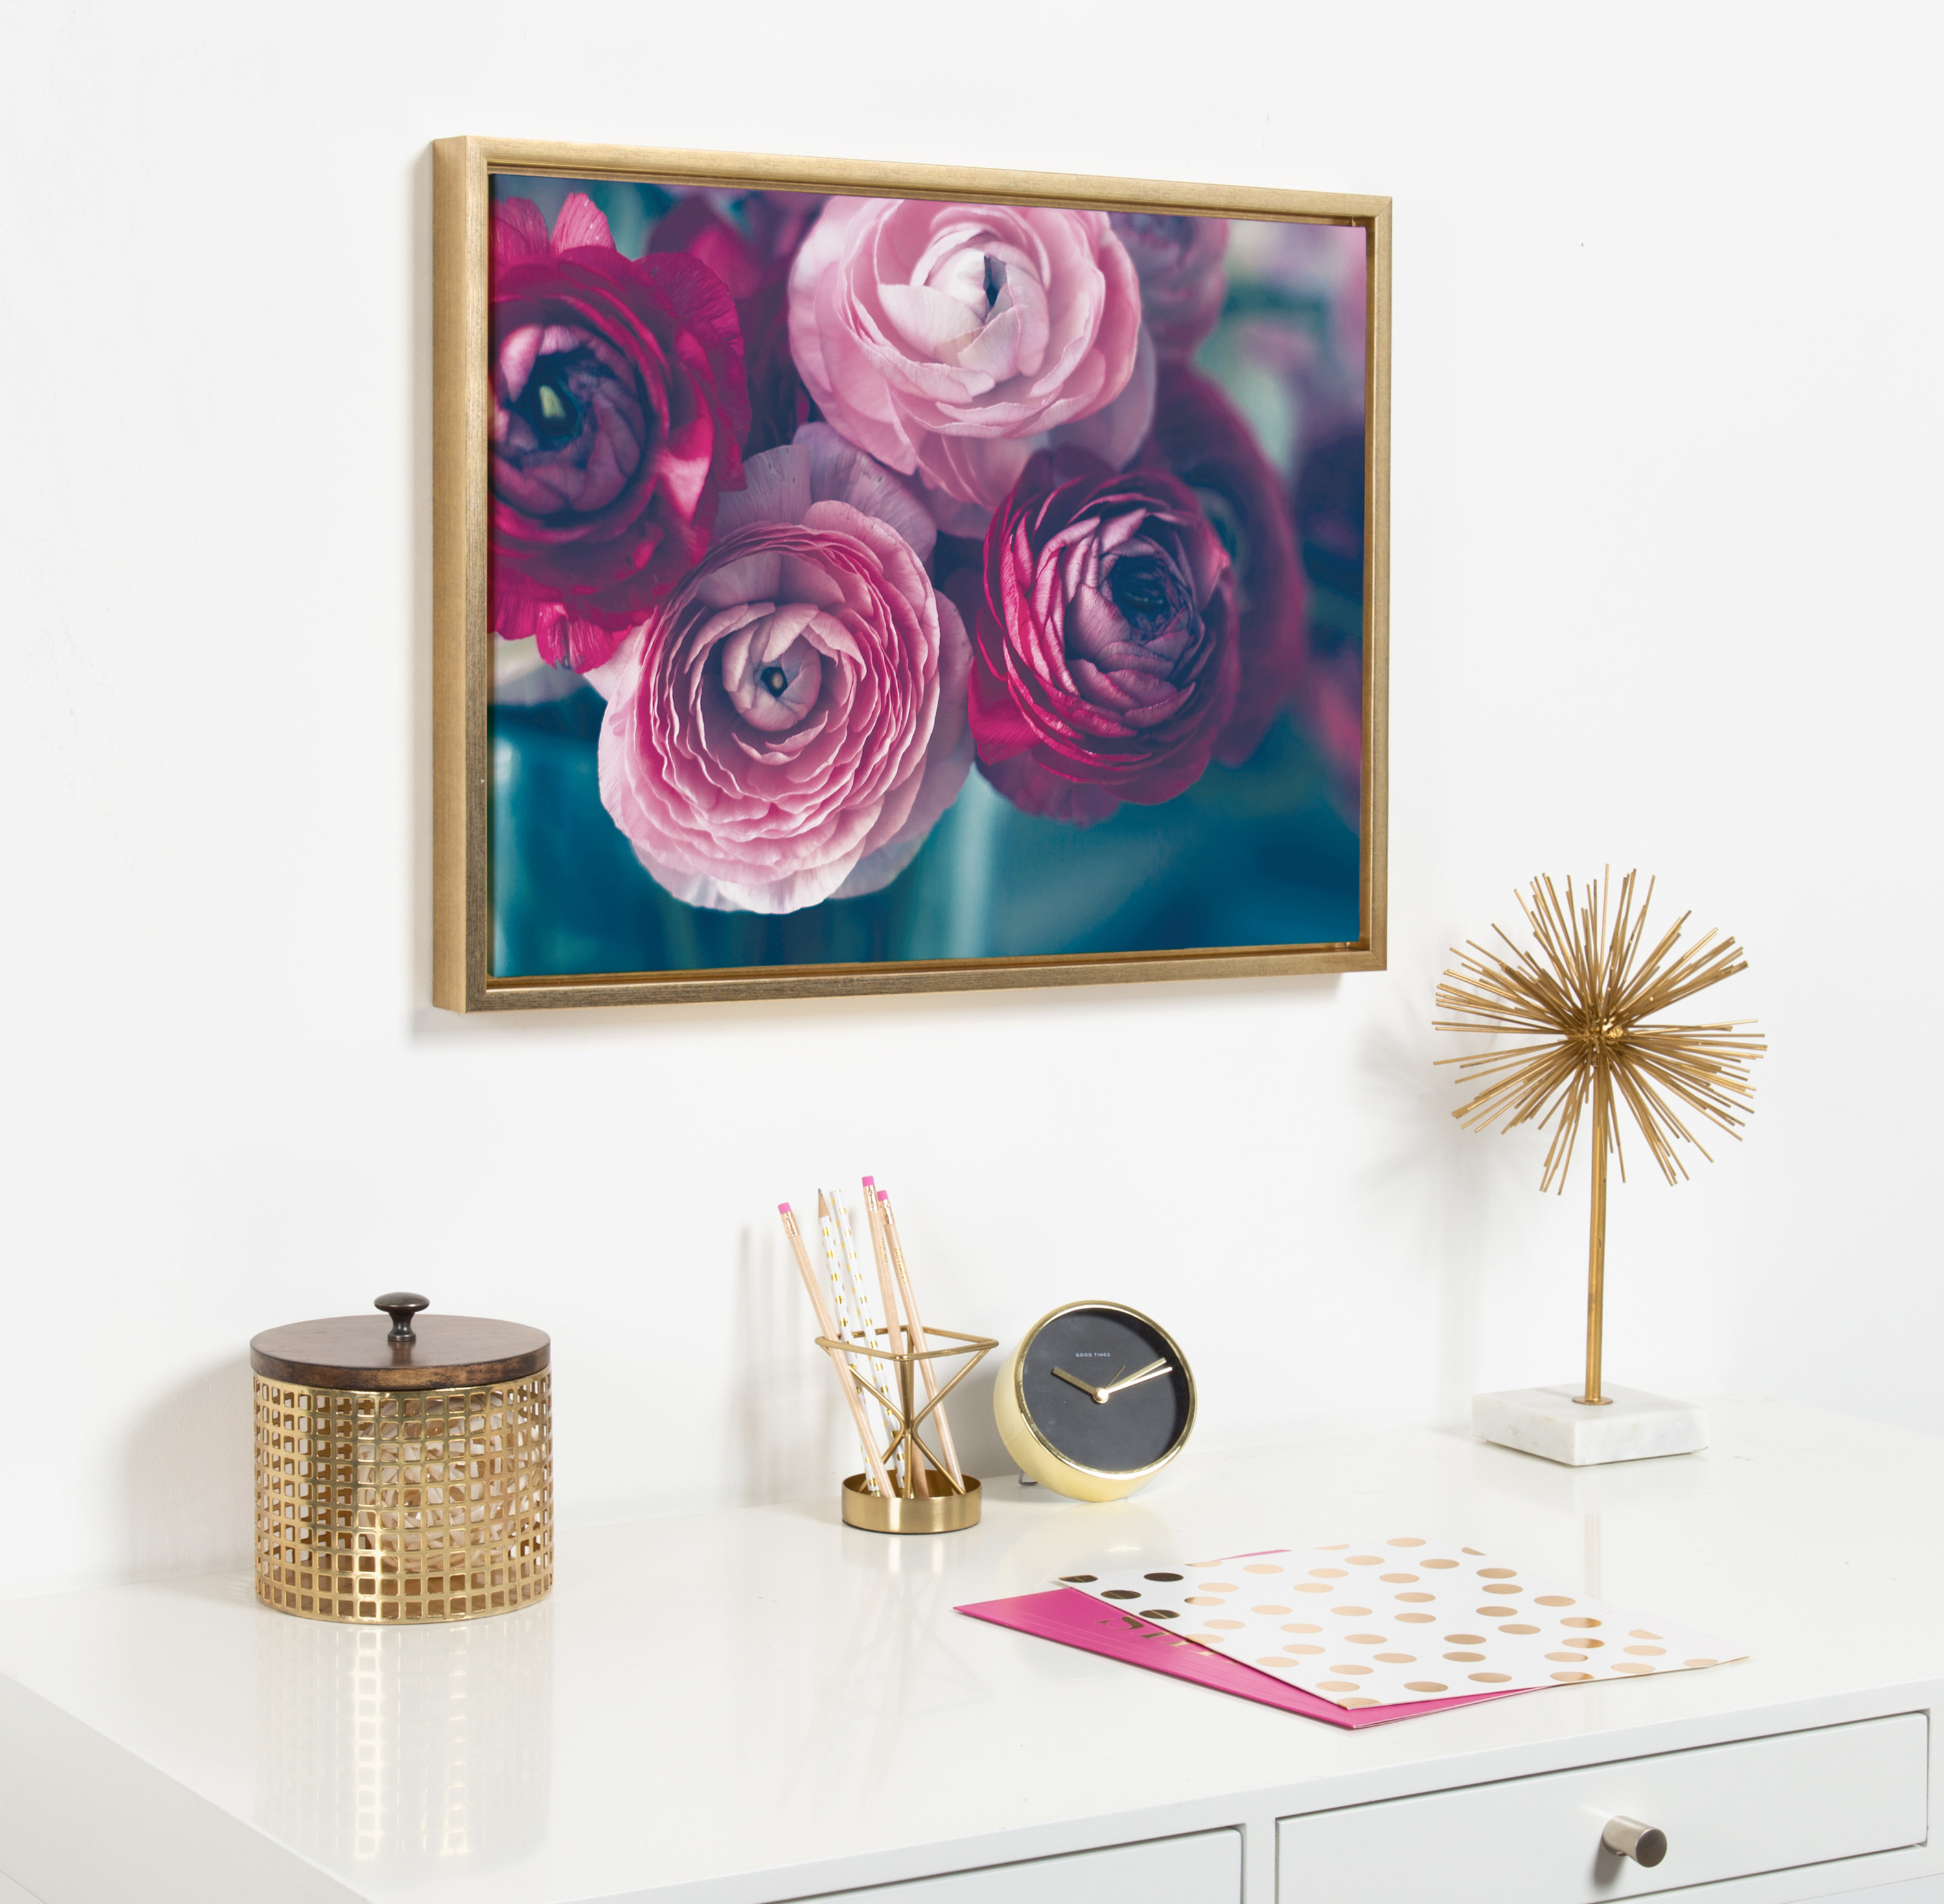 The canvas photo of a bouquet in a gold frame